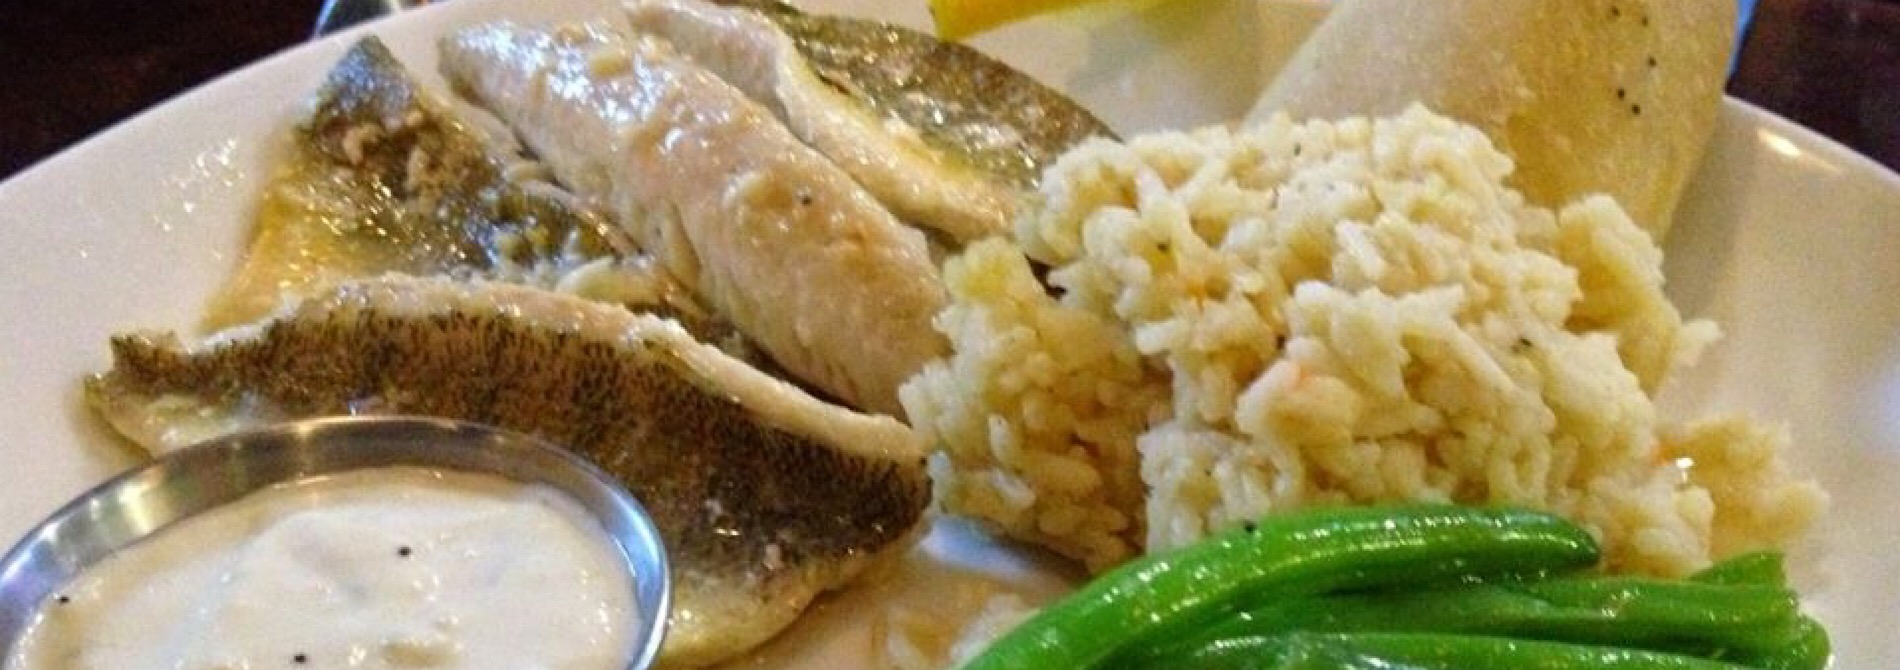 broiled perch with green beans